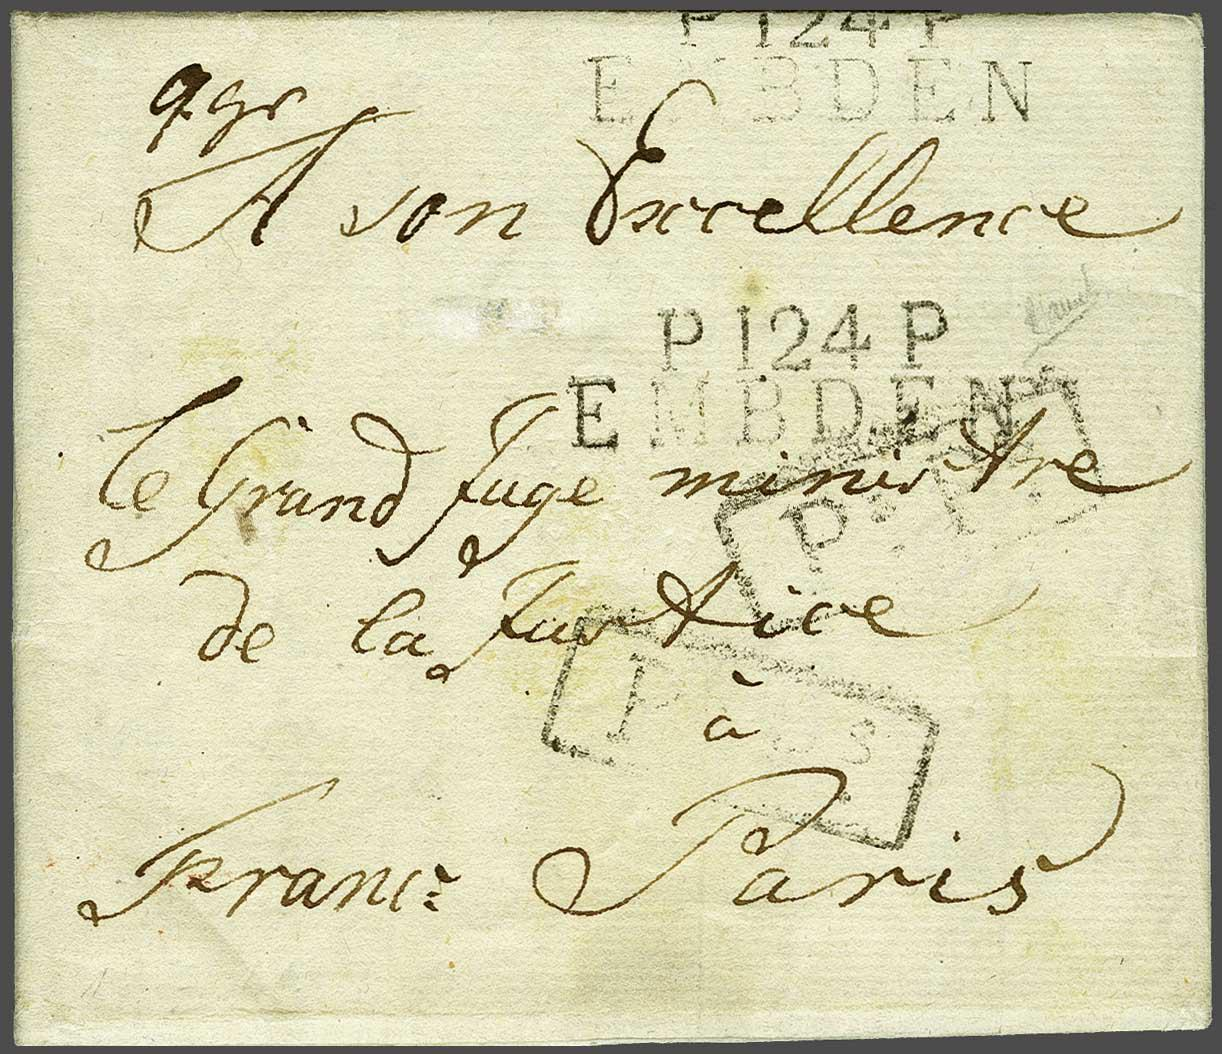 Lot 1706 - Netherlands and former colonies Netherlands -  Corinphila Veilingen Auction 245-246 Day 3 - Netherlands and former colonies - Single lots, Collections and lots, Boxes and literature